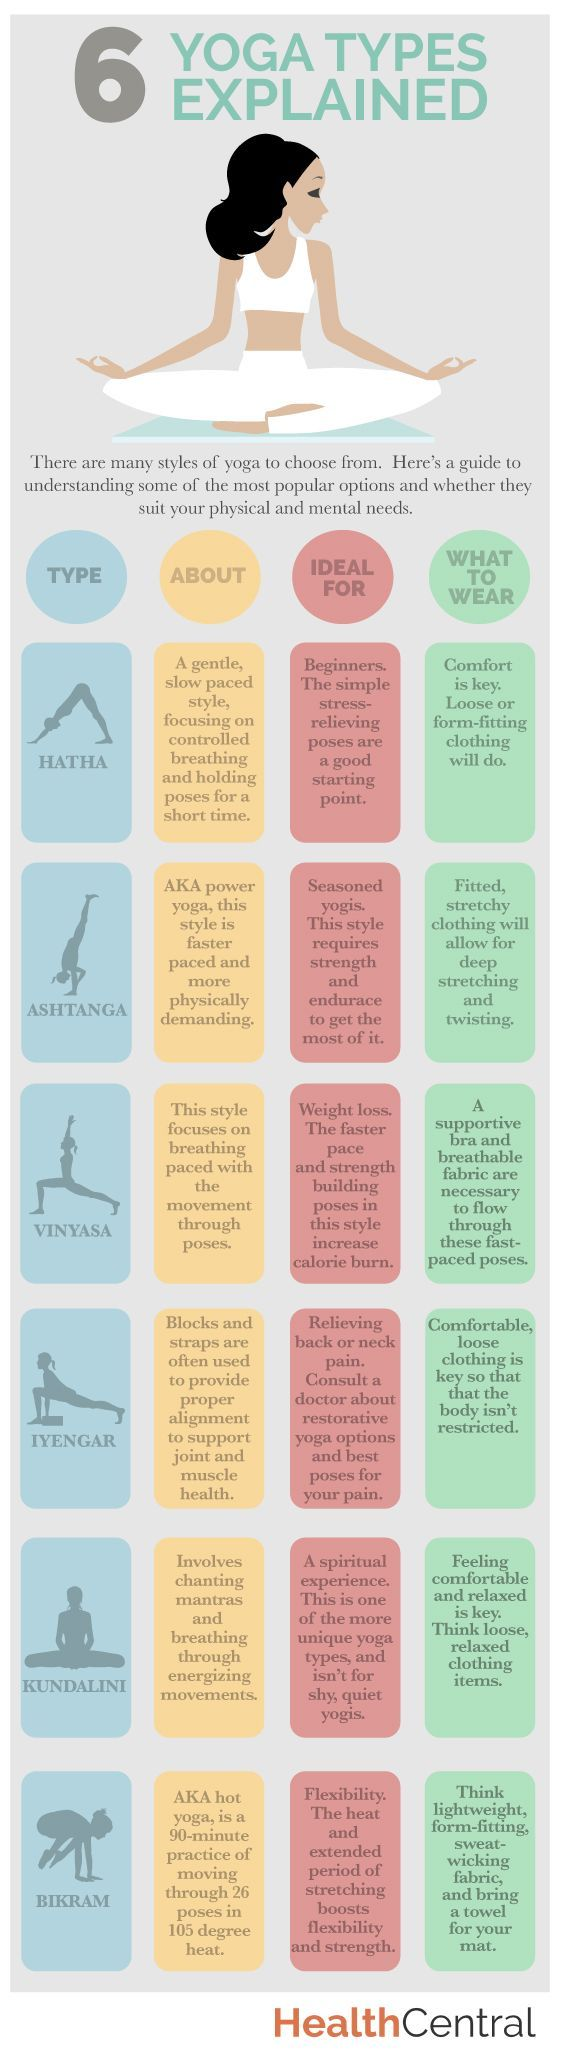 This diagram explains the questions you have about these 6 common yoga poses.